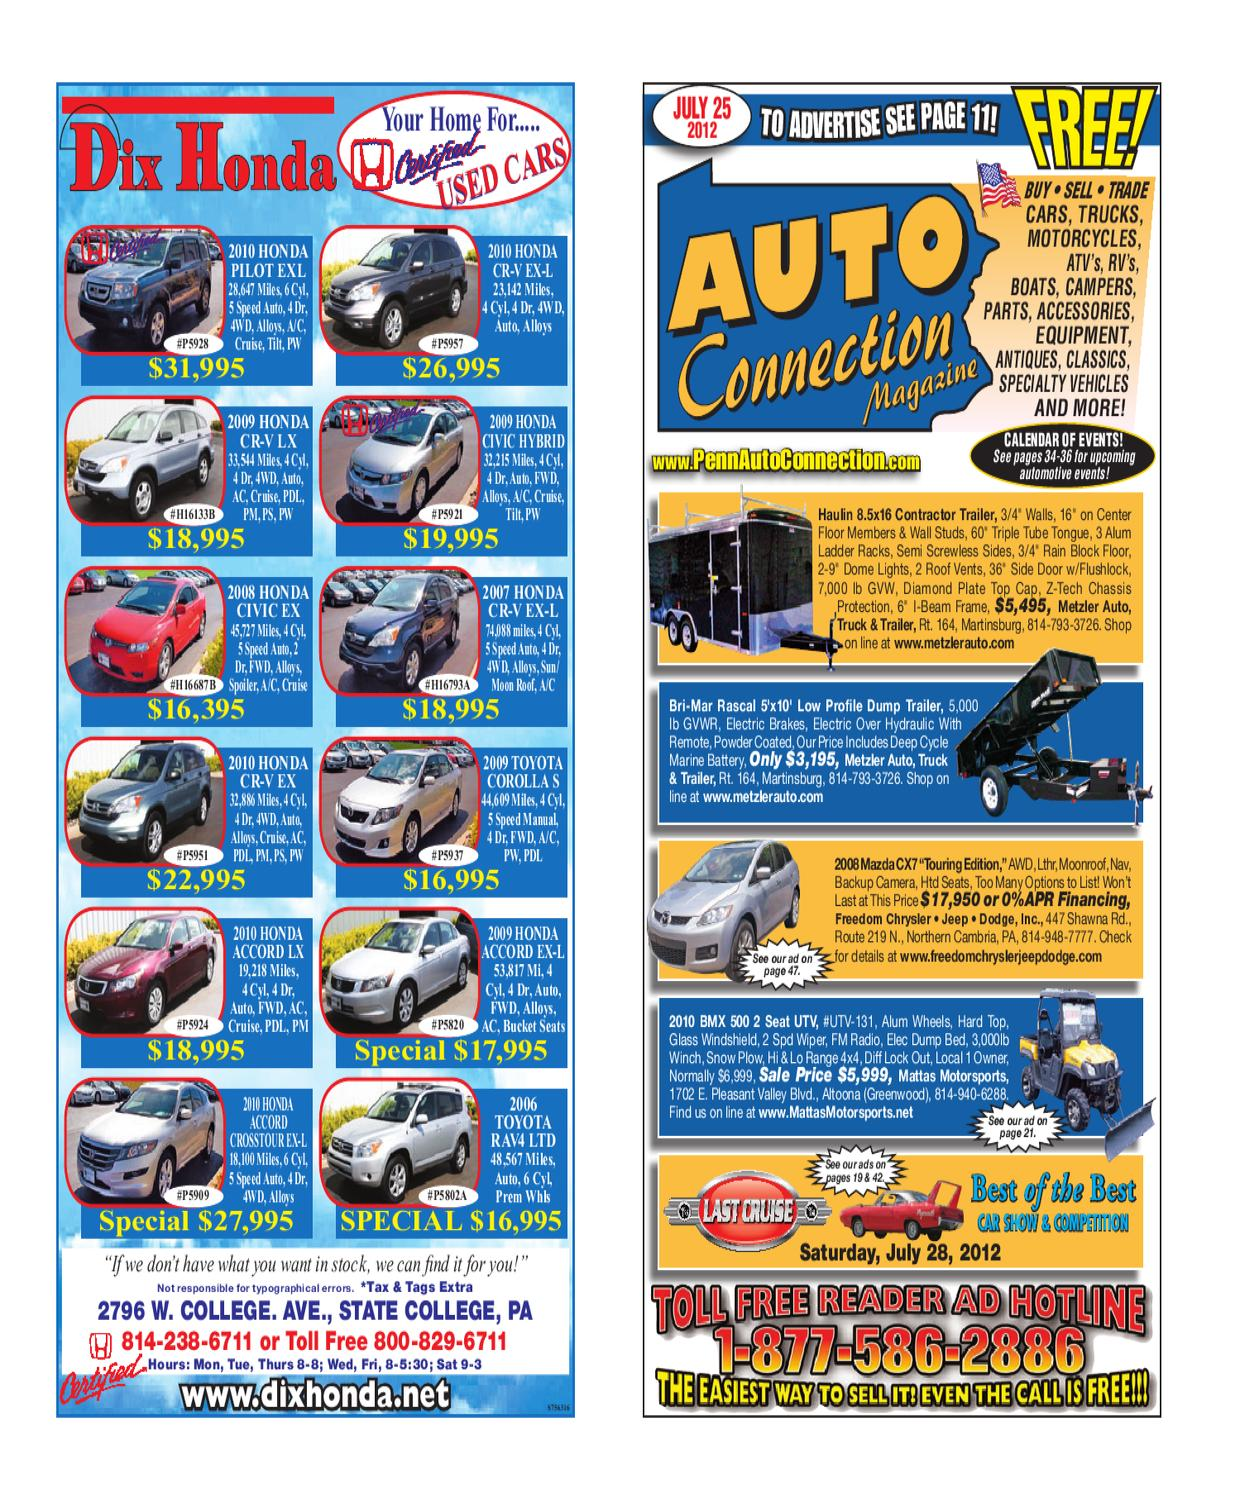 07 25 12 auto connection magazine by auto connection magazine issuu300c Oil Pressure Switch Location 1988 Ford Bronco 1998 Ford F #18